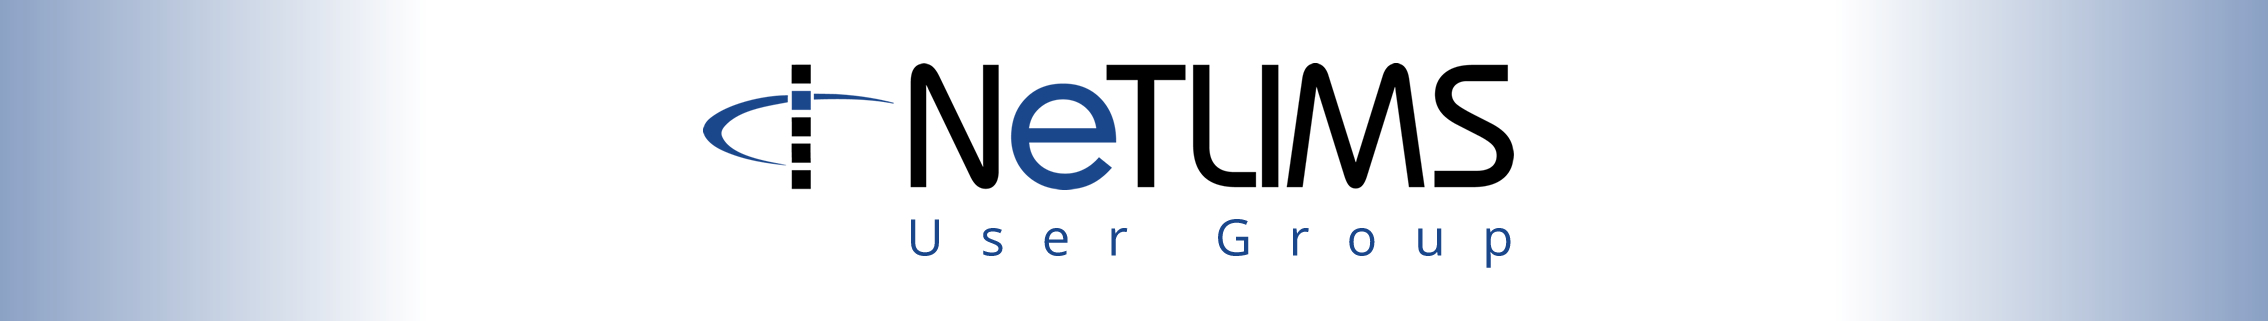 About Netlims User Group